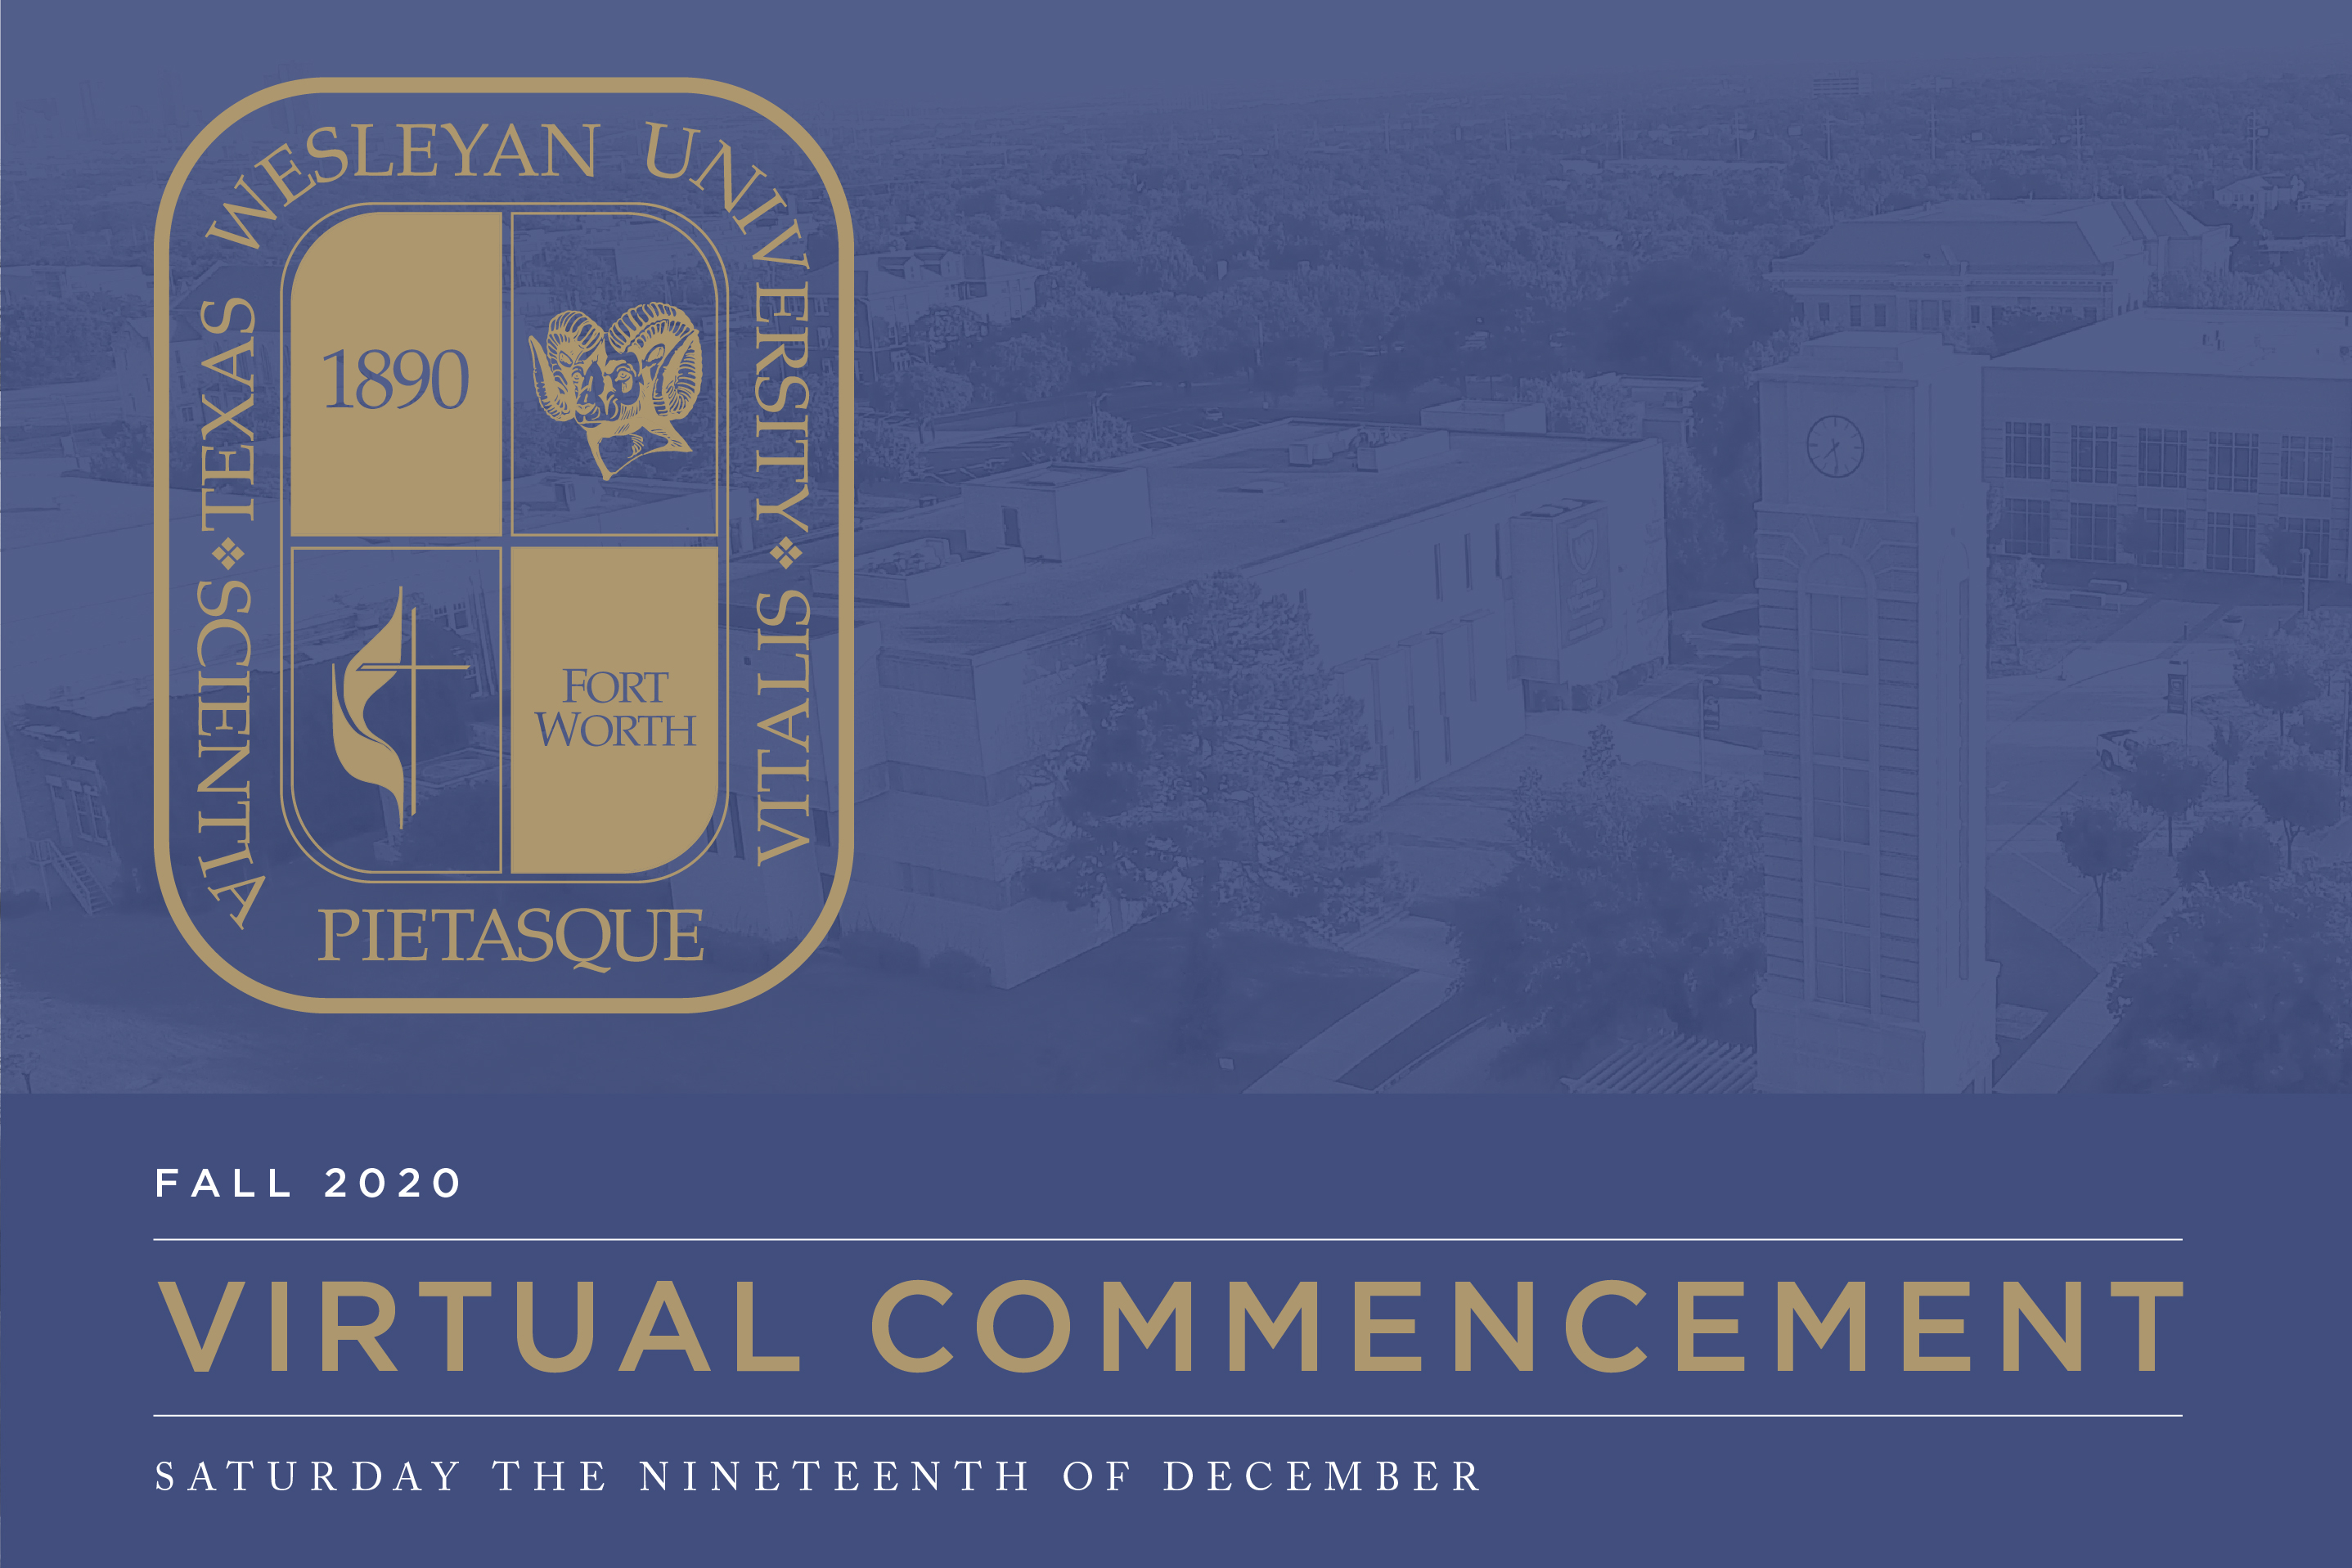 Virtual Commencement 2020, Saturday, December nineteenth at ten o'clock a.m. on YouTube premiere